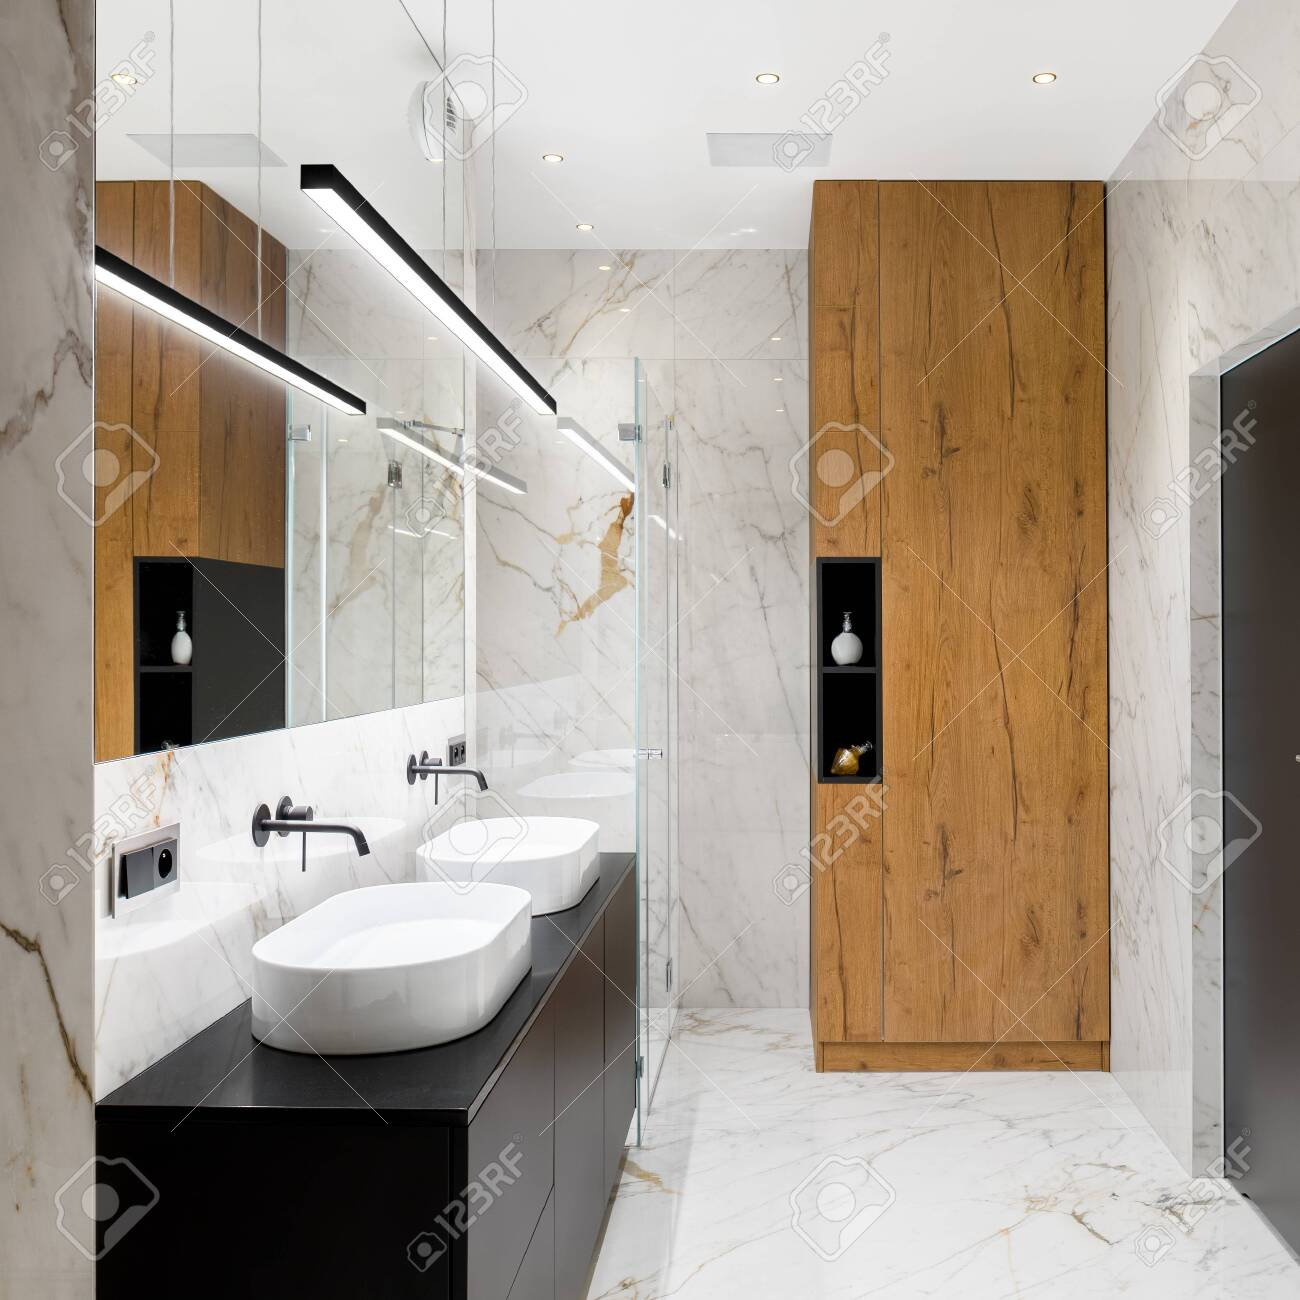 luxury bathroom with marble tiles on floor and walls two washbasins stock photo picture and royalty free image image 146770178